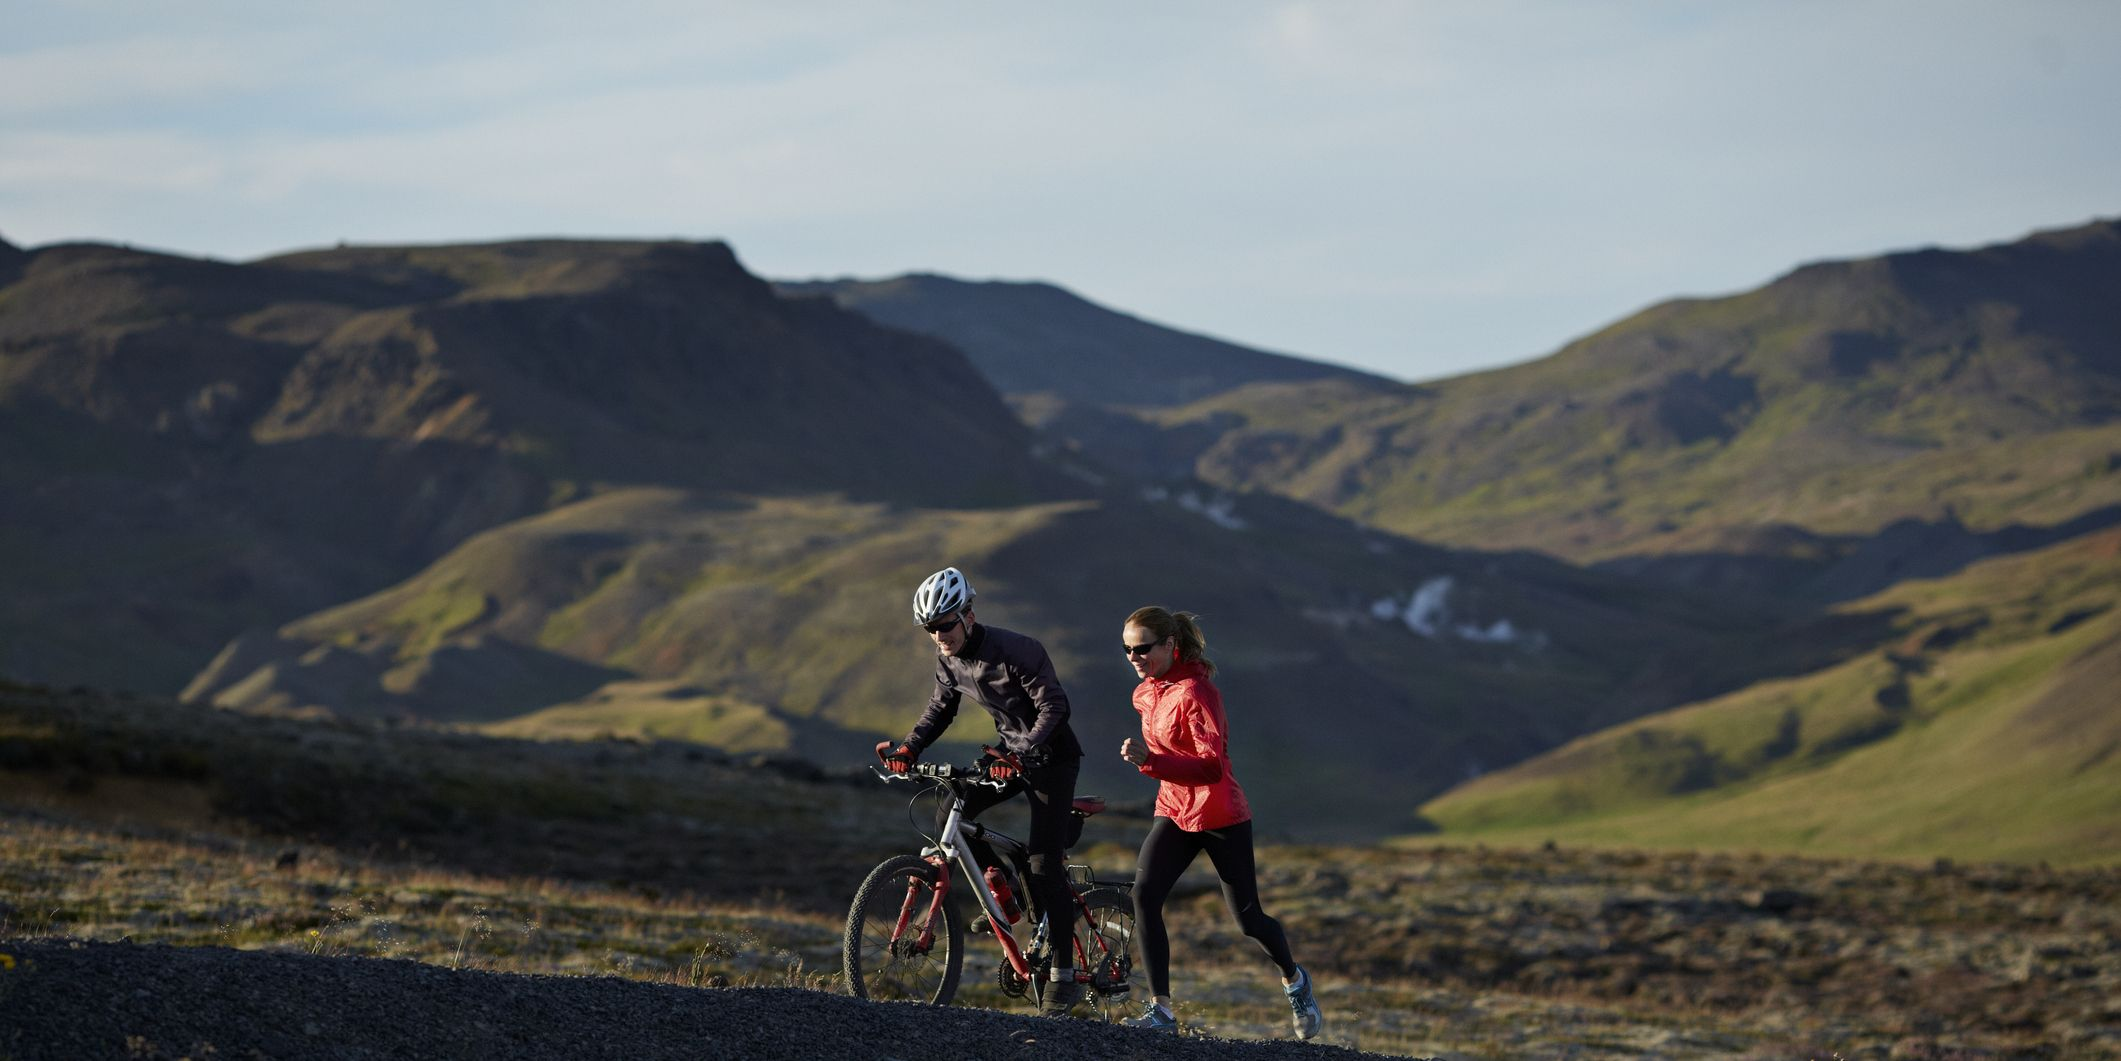 Couple running & biking together on mountain trail